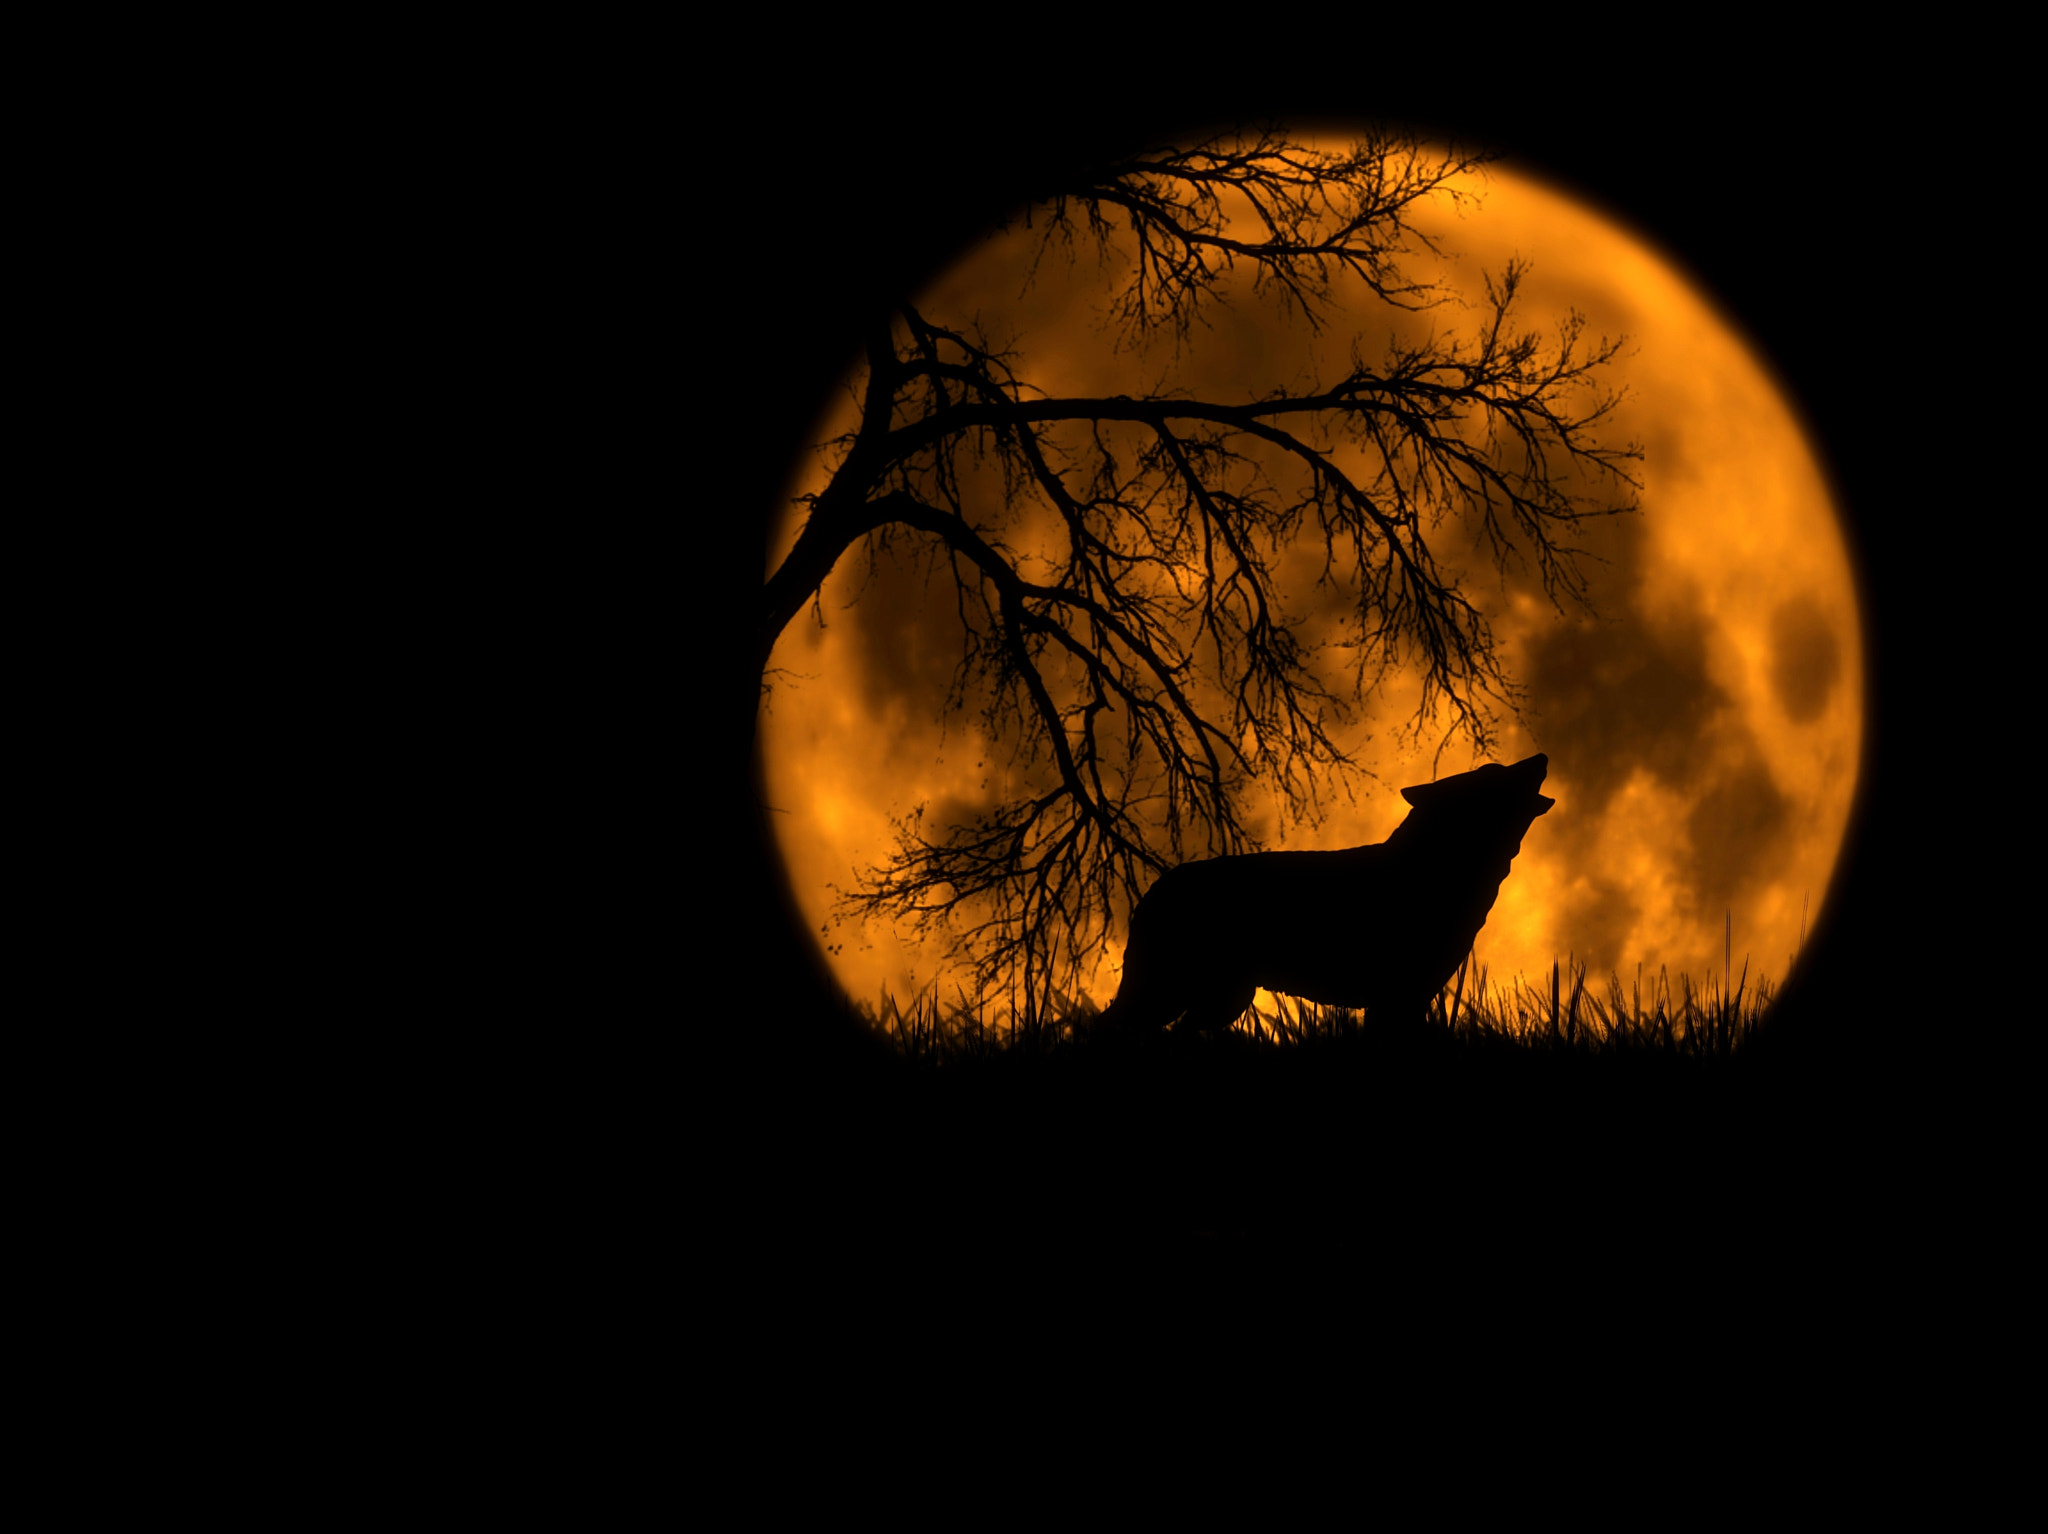 Photograph The wolf and moon by Schipor Catalin on 500px